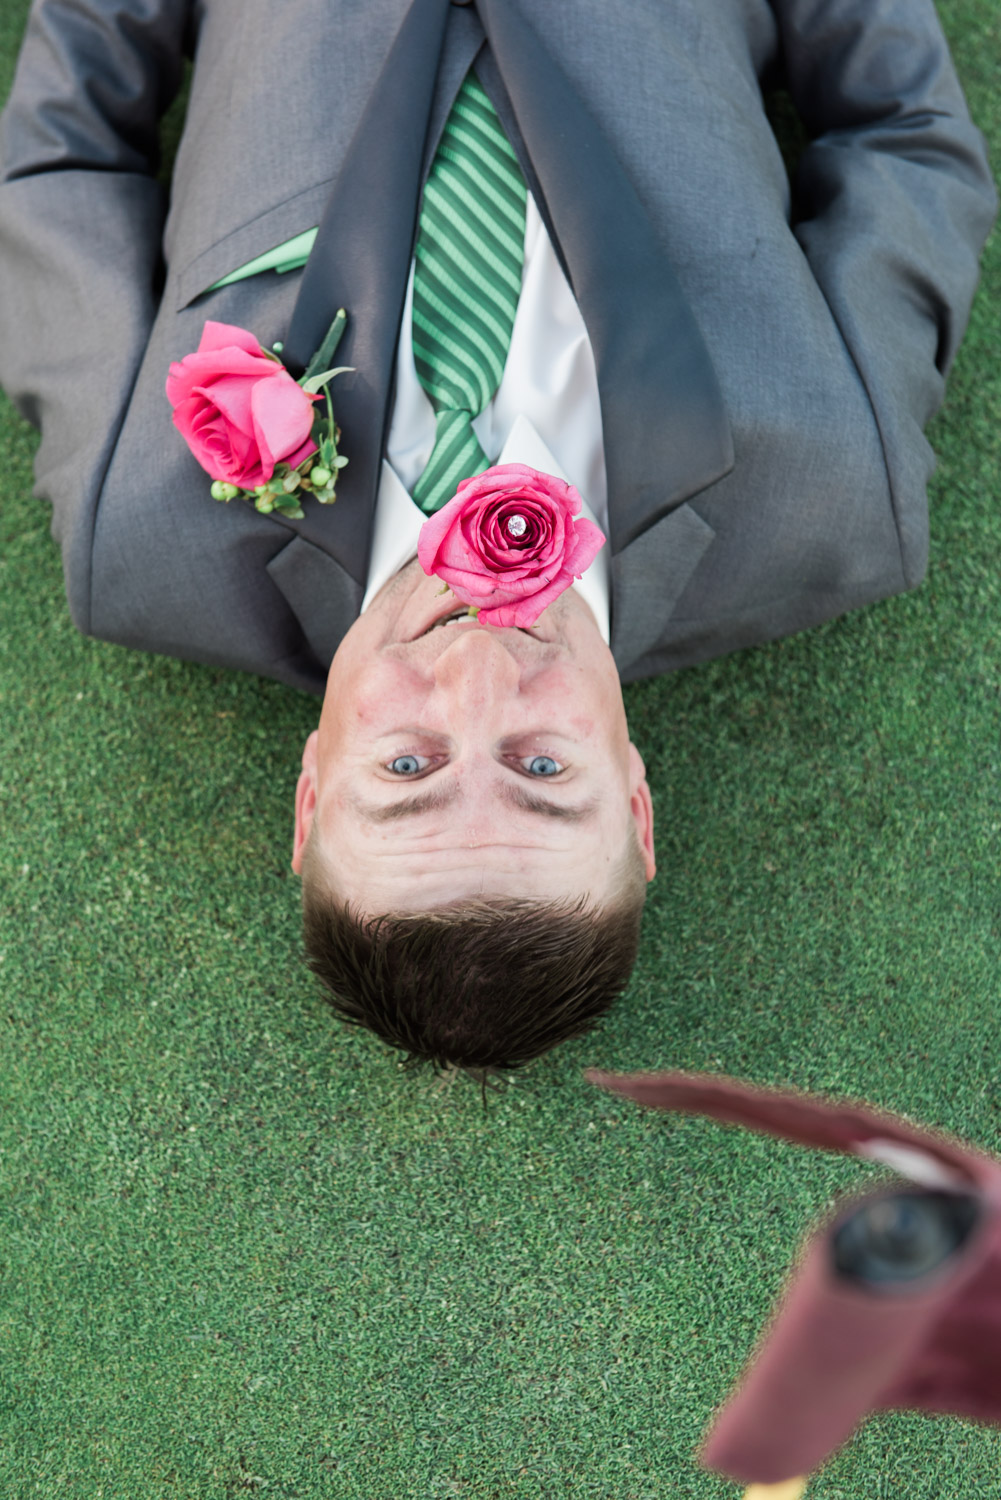 This groom surely knows how to play along.